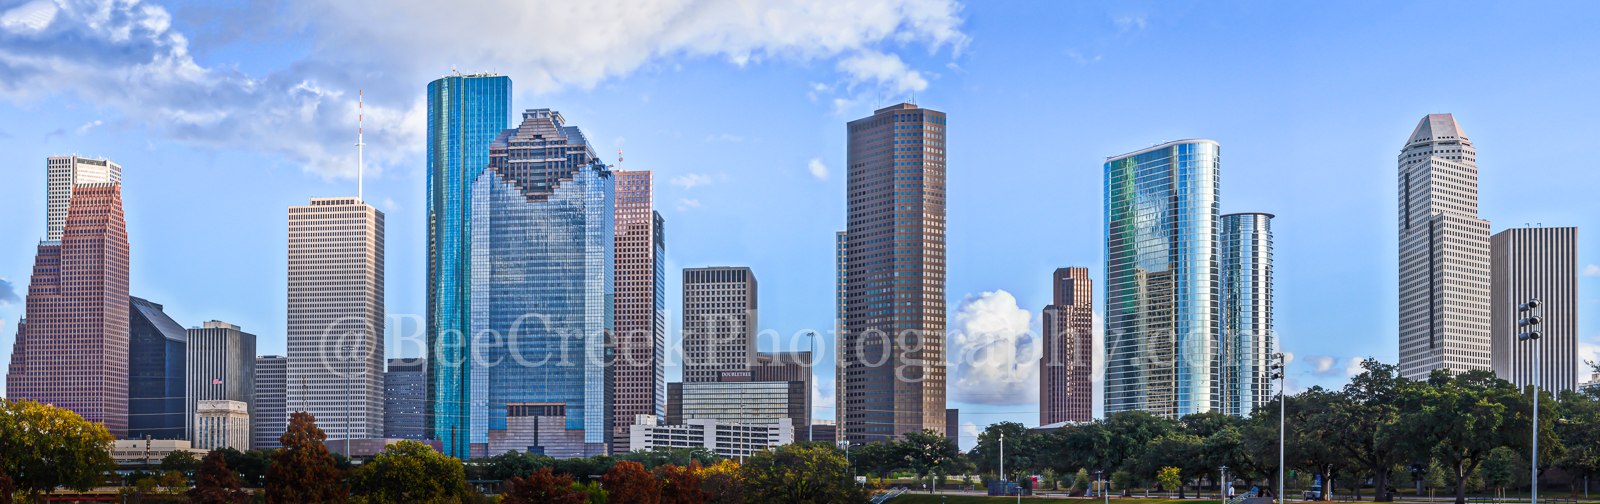 Houston Skyline, houston, skyline, downtown houston, city of houston, skyline of houston, images of houston, Houston architecture, houston texas,